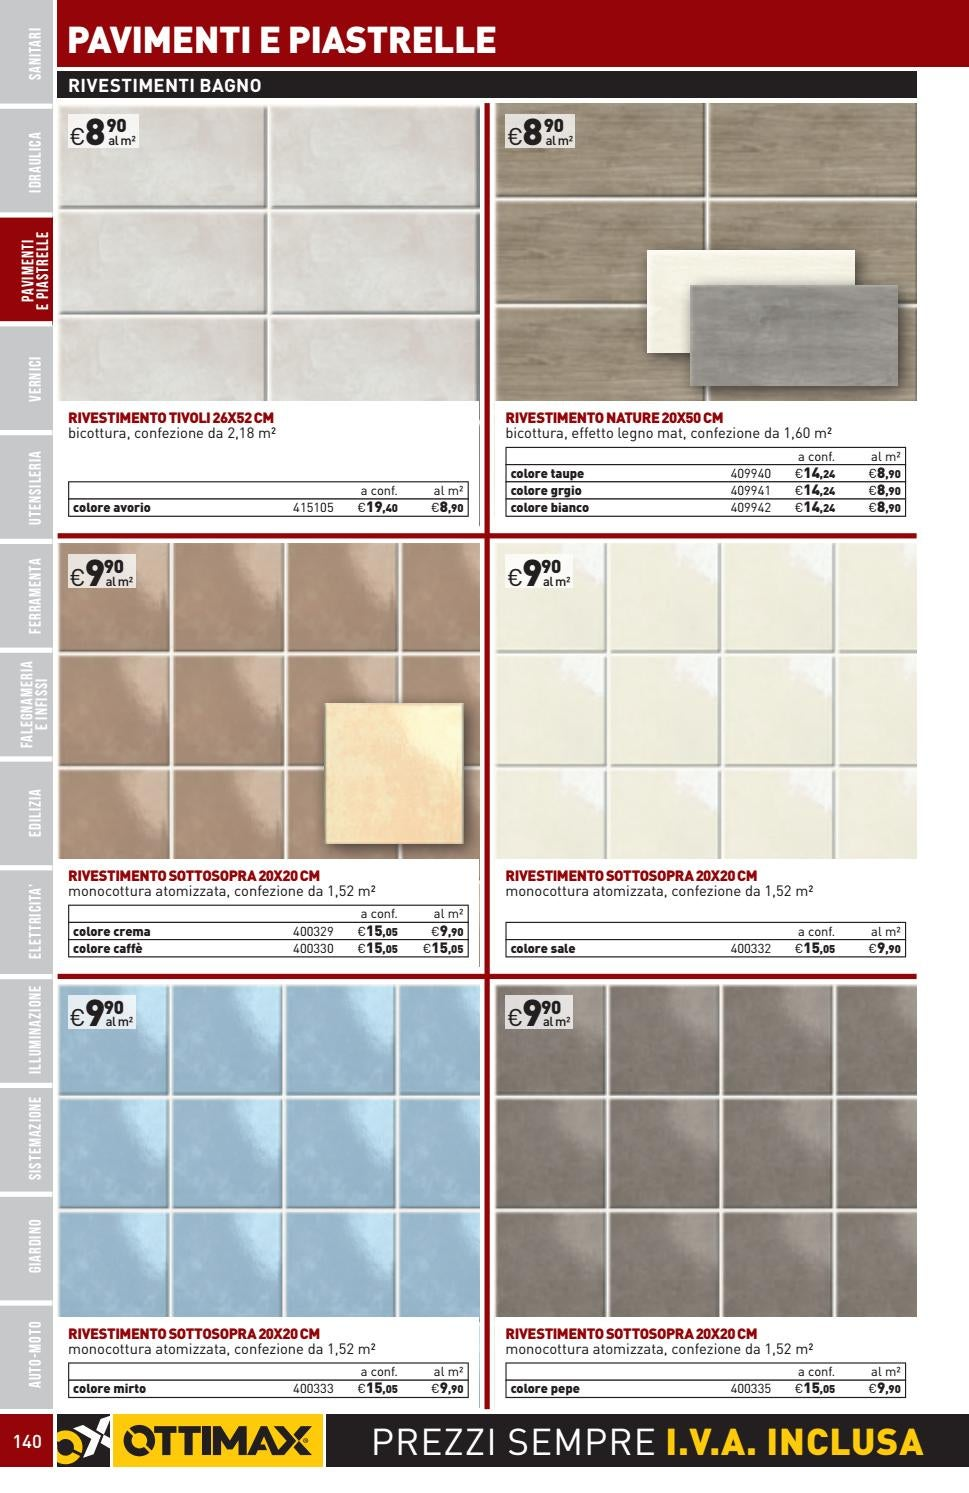 Piastrelle 20x20 Sale E Pepe Catalogo Generale Olbia 2018 By Ottimax Issuu